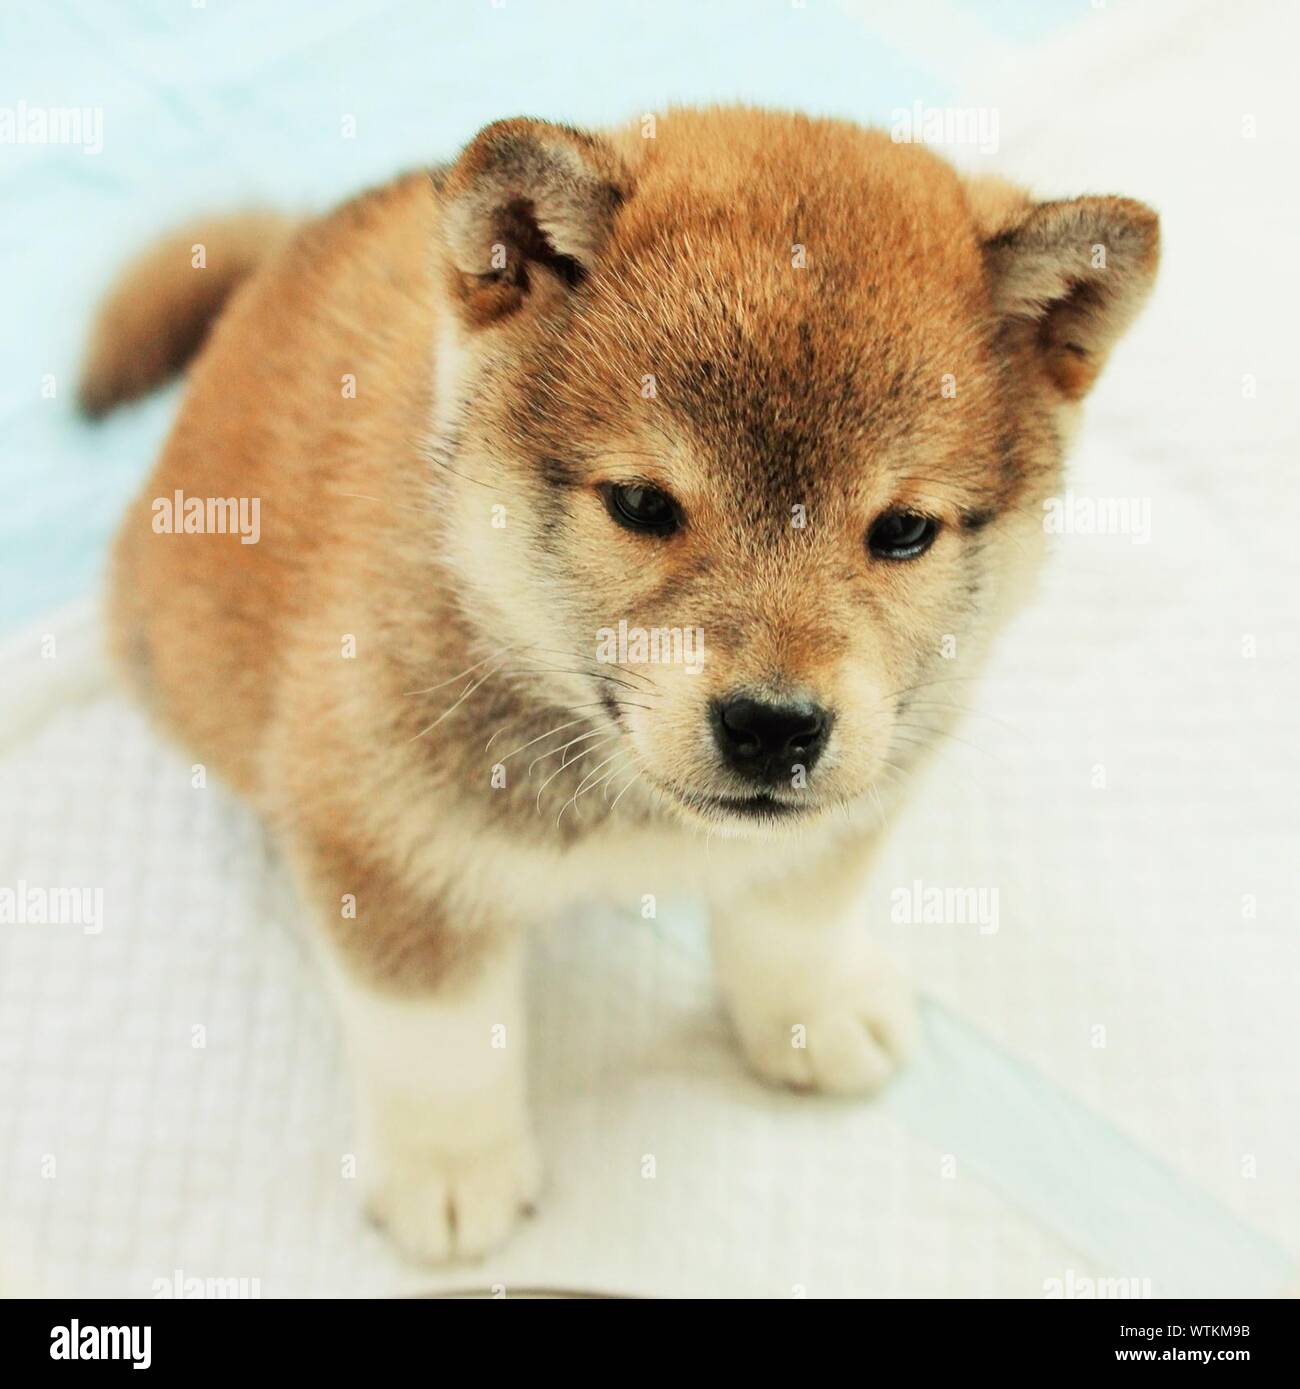 Close Up Of Cute Shiba Inu Puppy Stock Photo Alamy